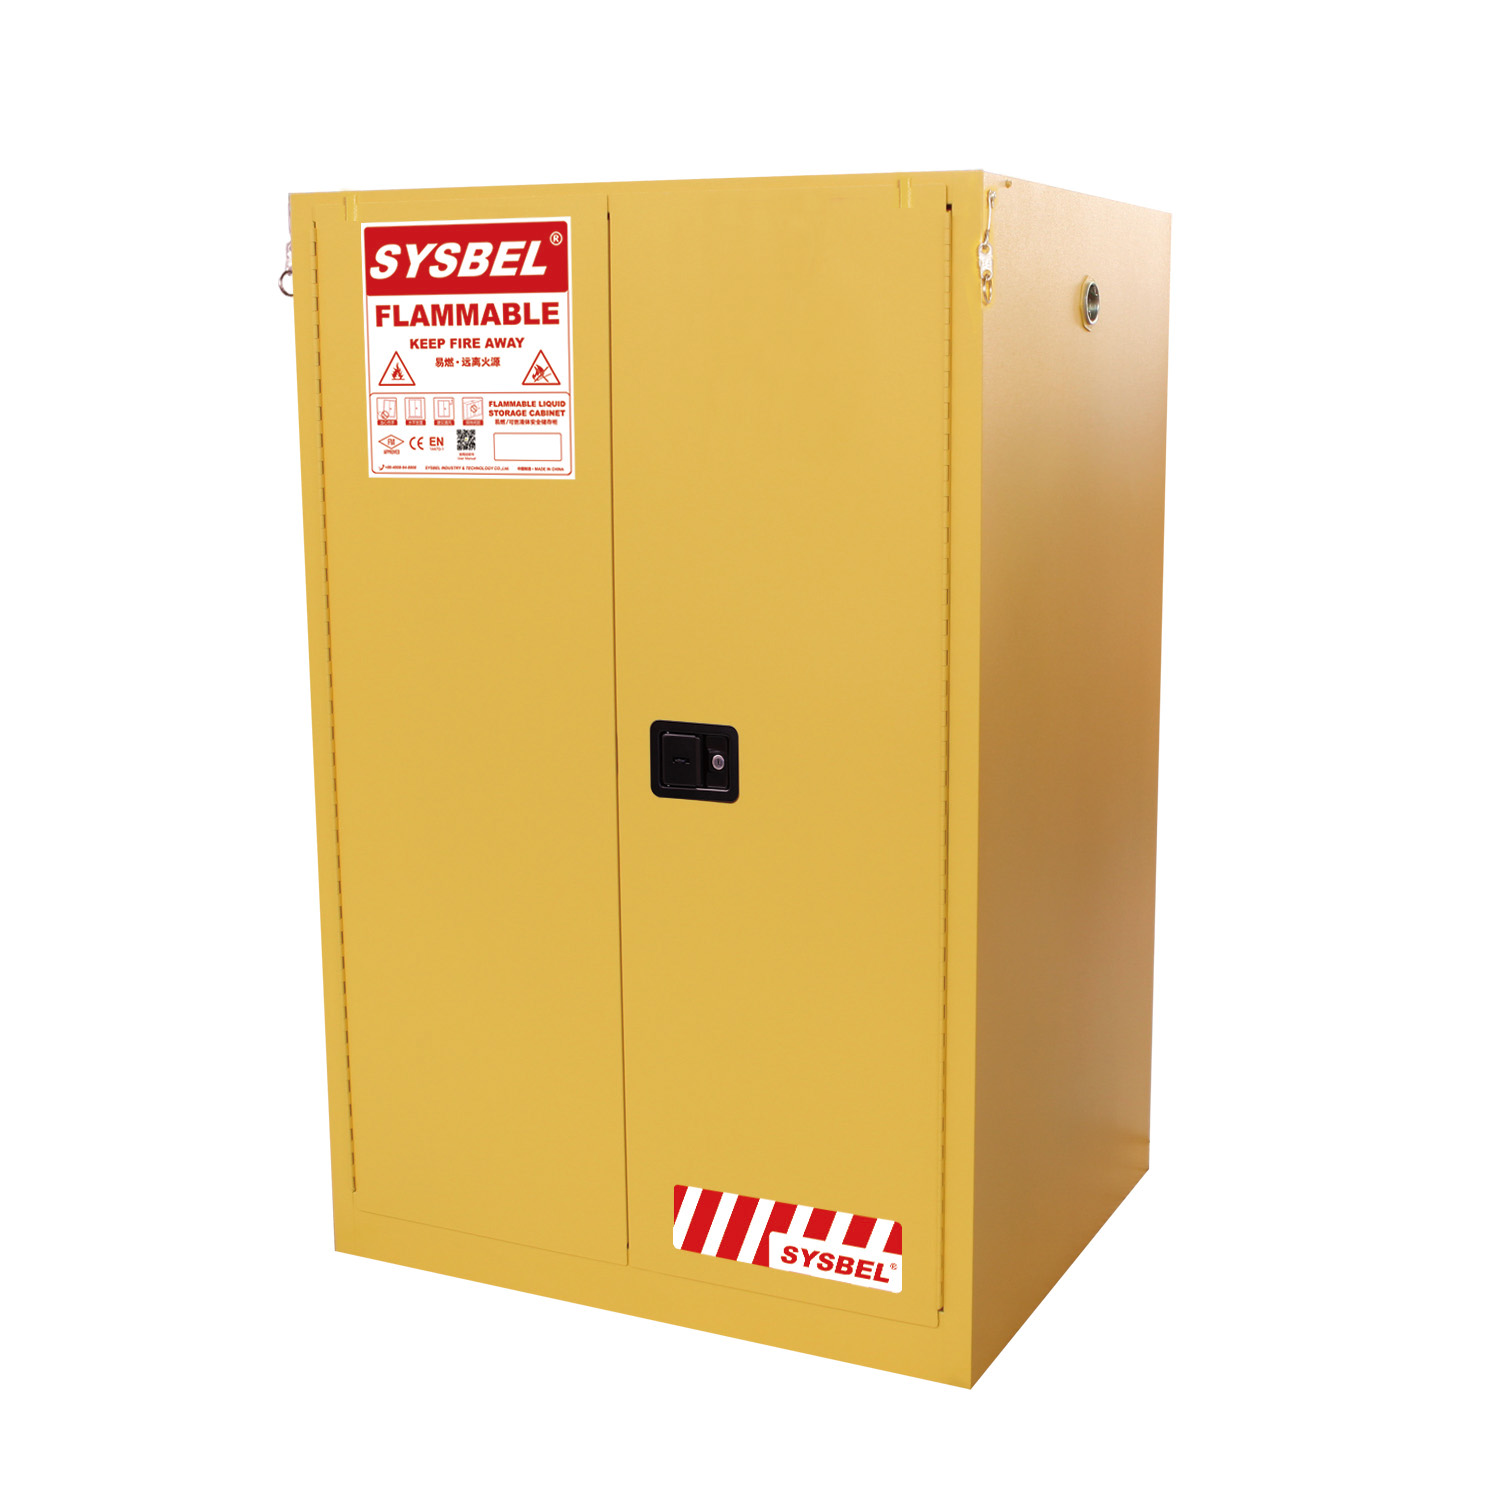 SD F 83L SYSBEL Flammable Cabinet Self Closing